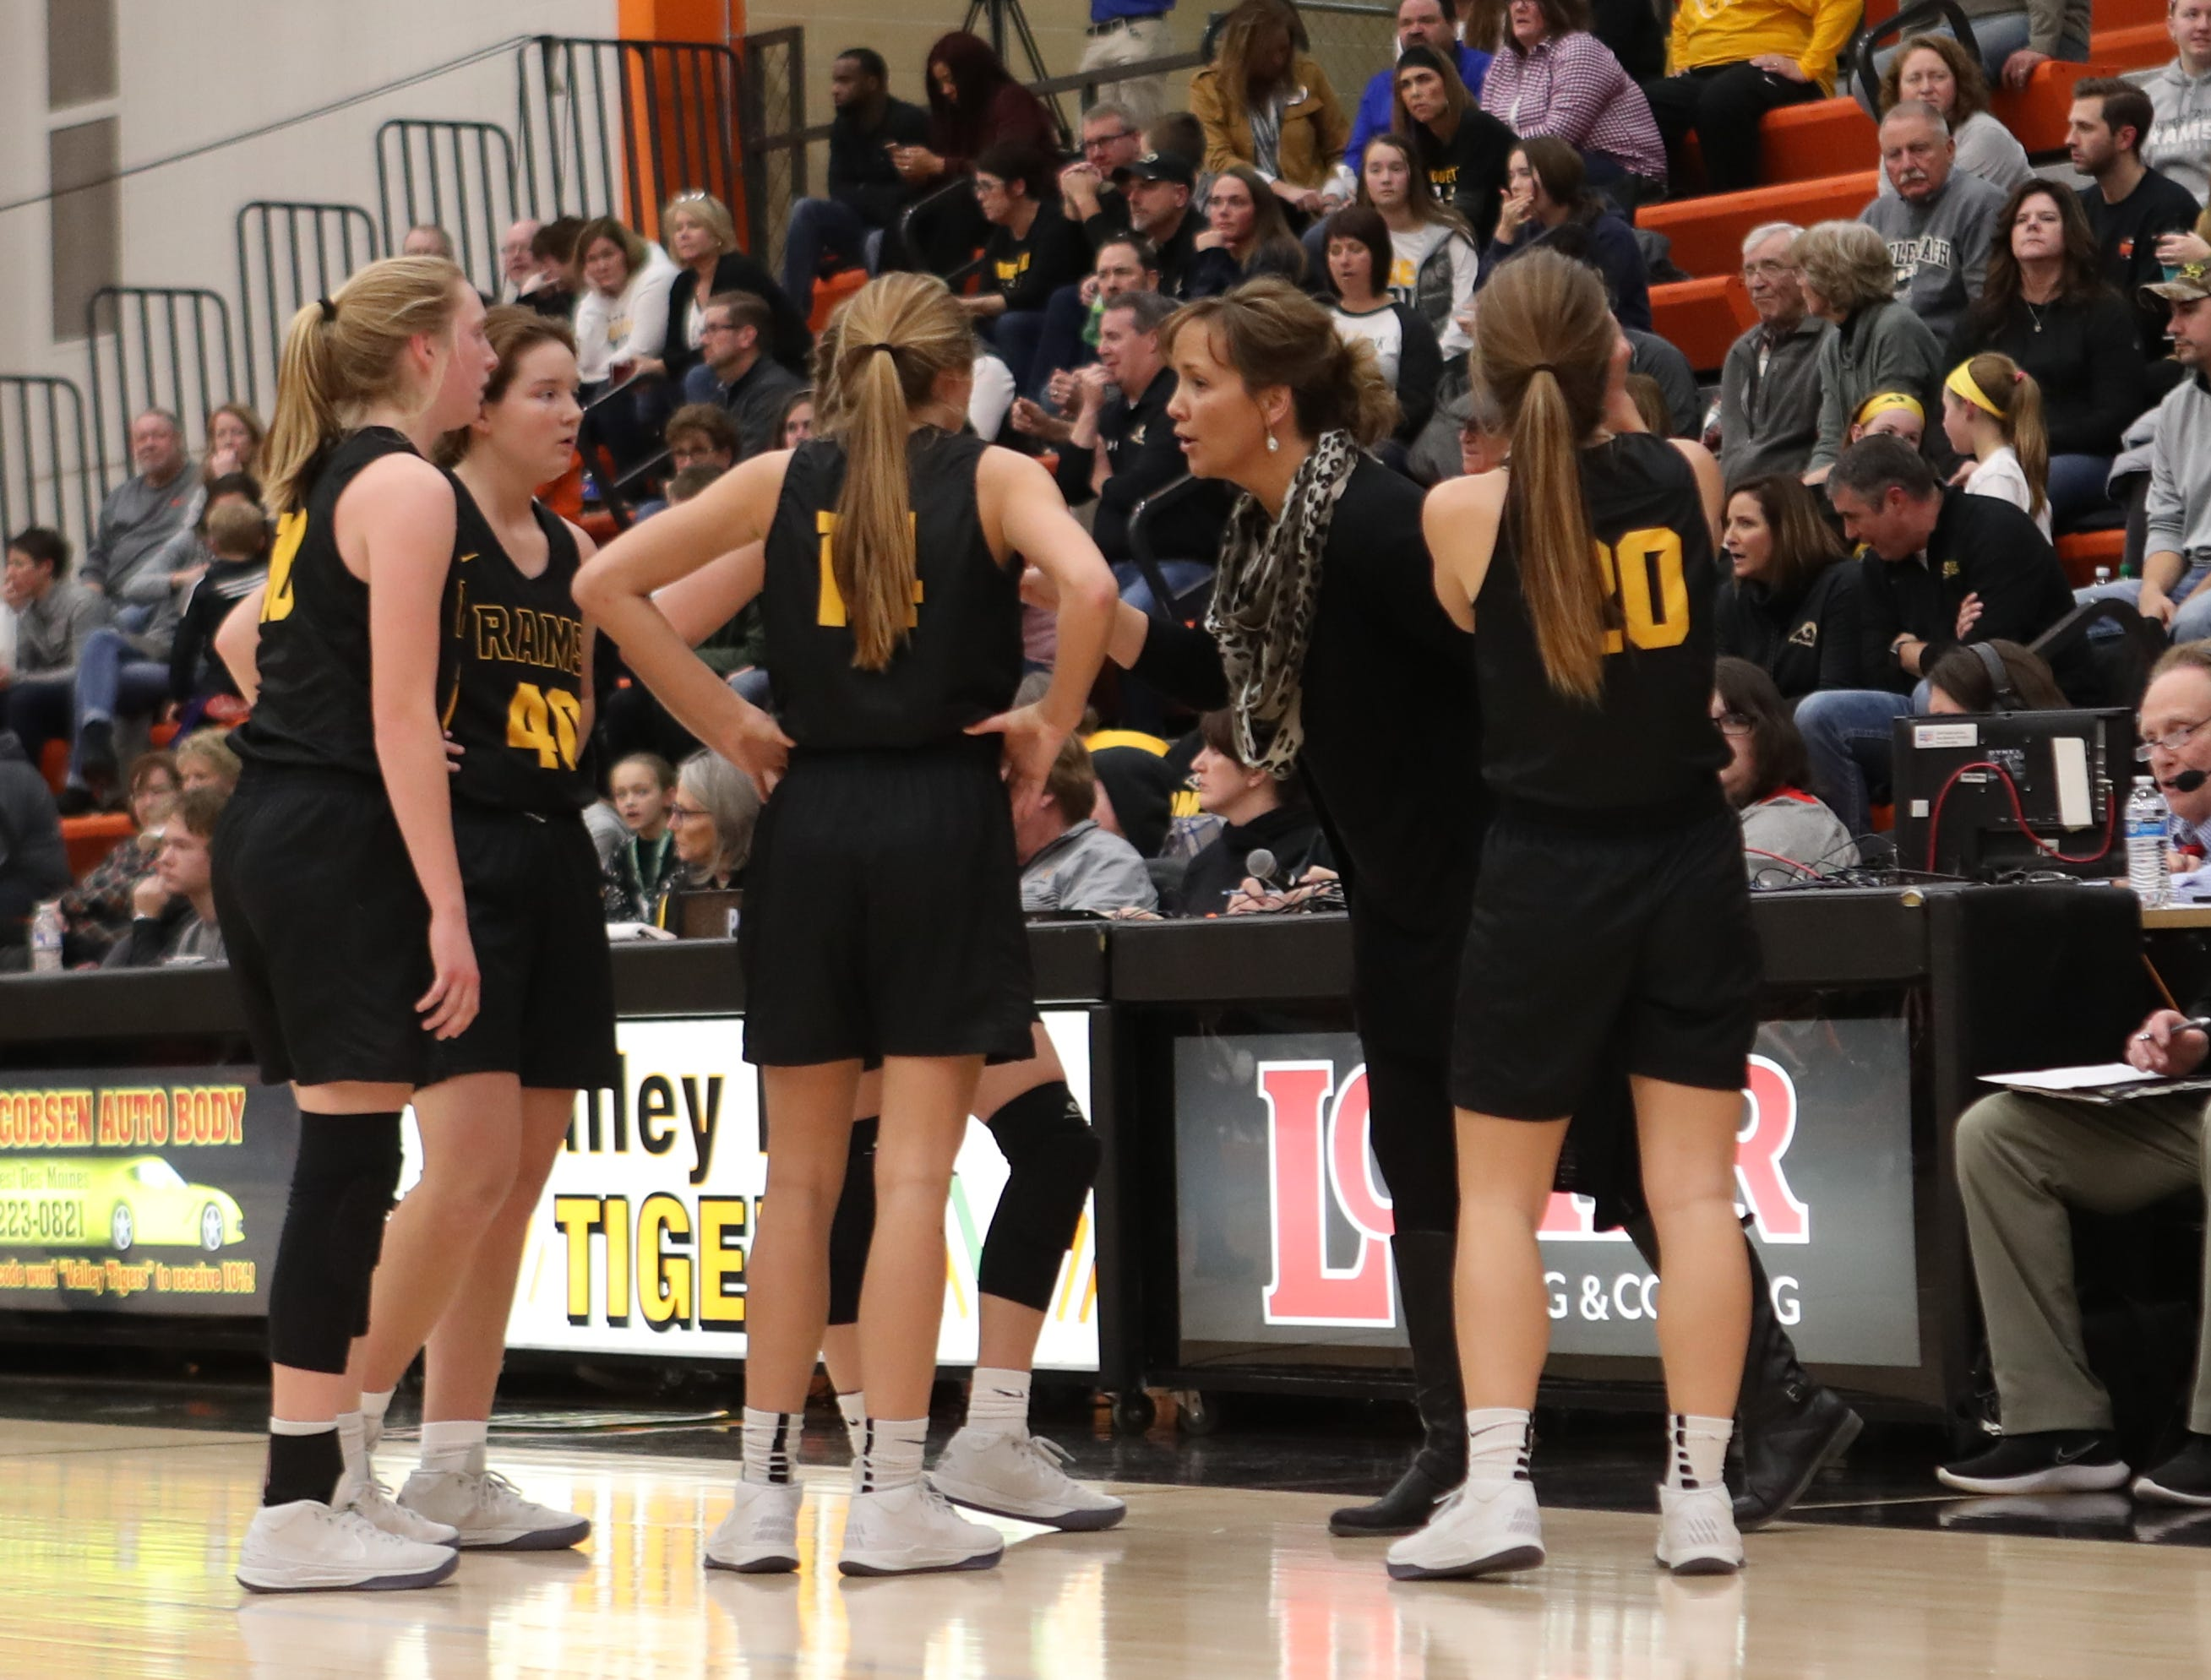 Southeast Polk Rams head coach Tracy Dailey talks to her team during a girls basketball game at Valley High School on Jan. 11, 2019.